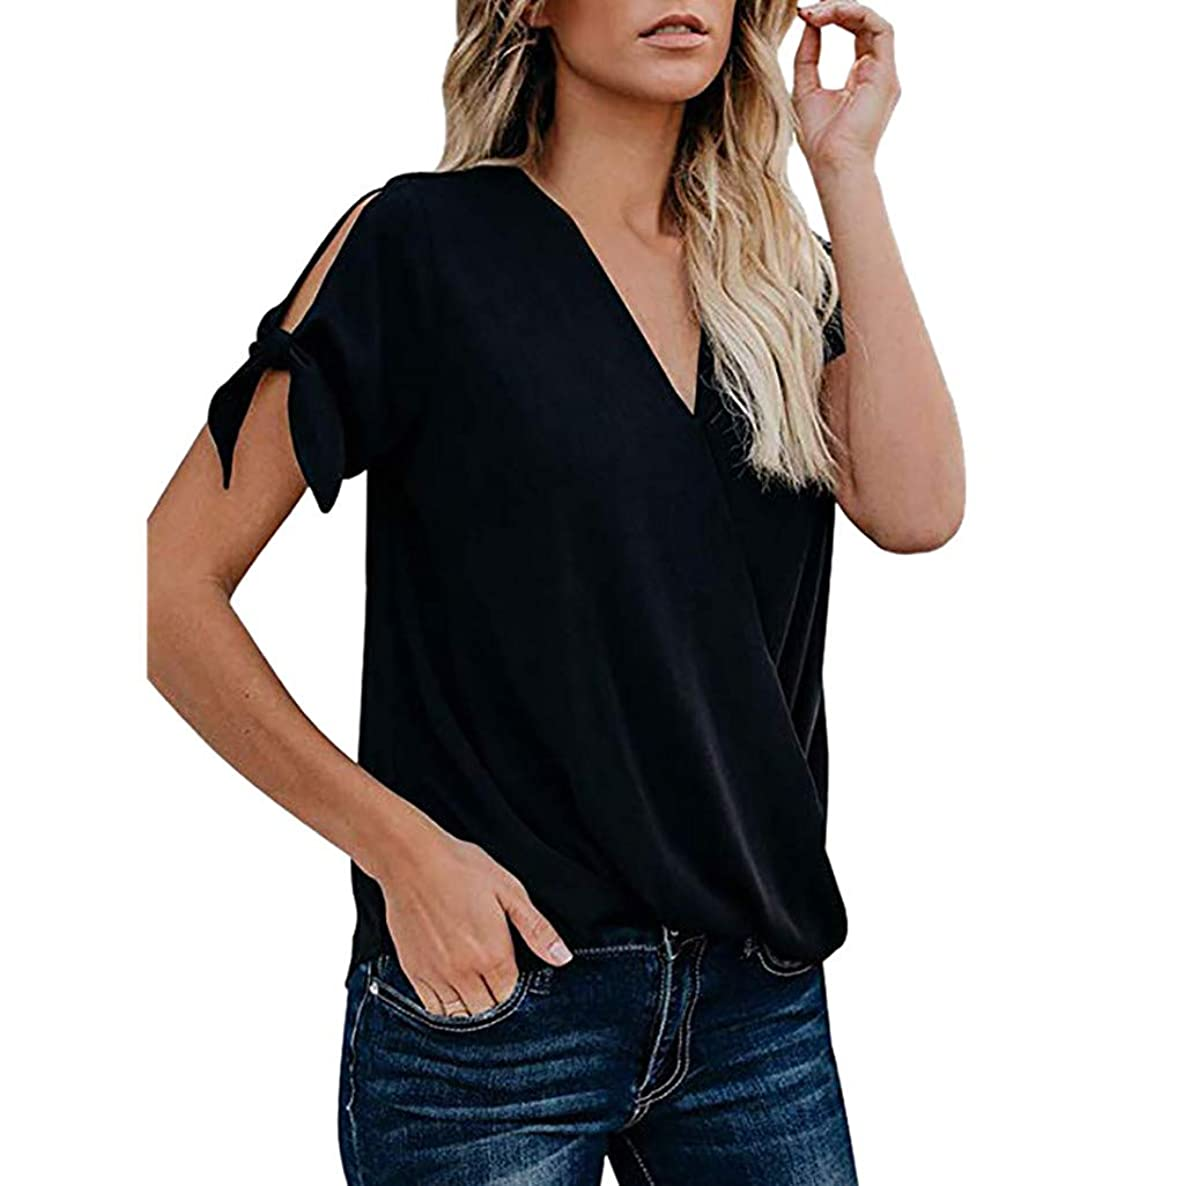 Womens Tops HYGCGH7Y Women's Casual Short Sleeve Hollowing out V-Neck Solid Blouse Tops With Bow